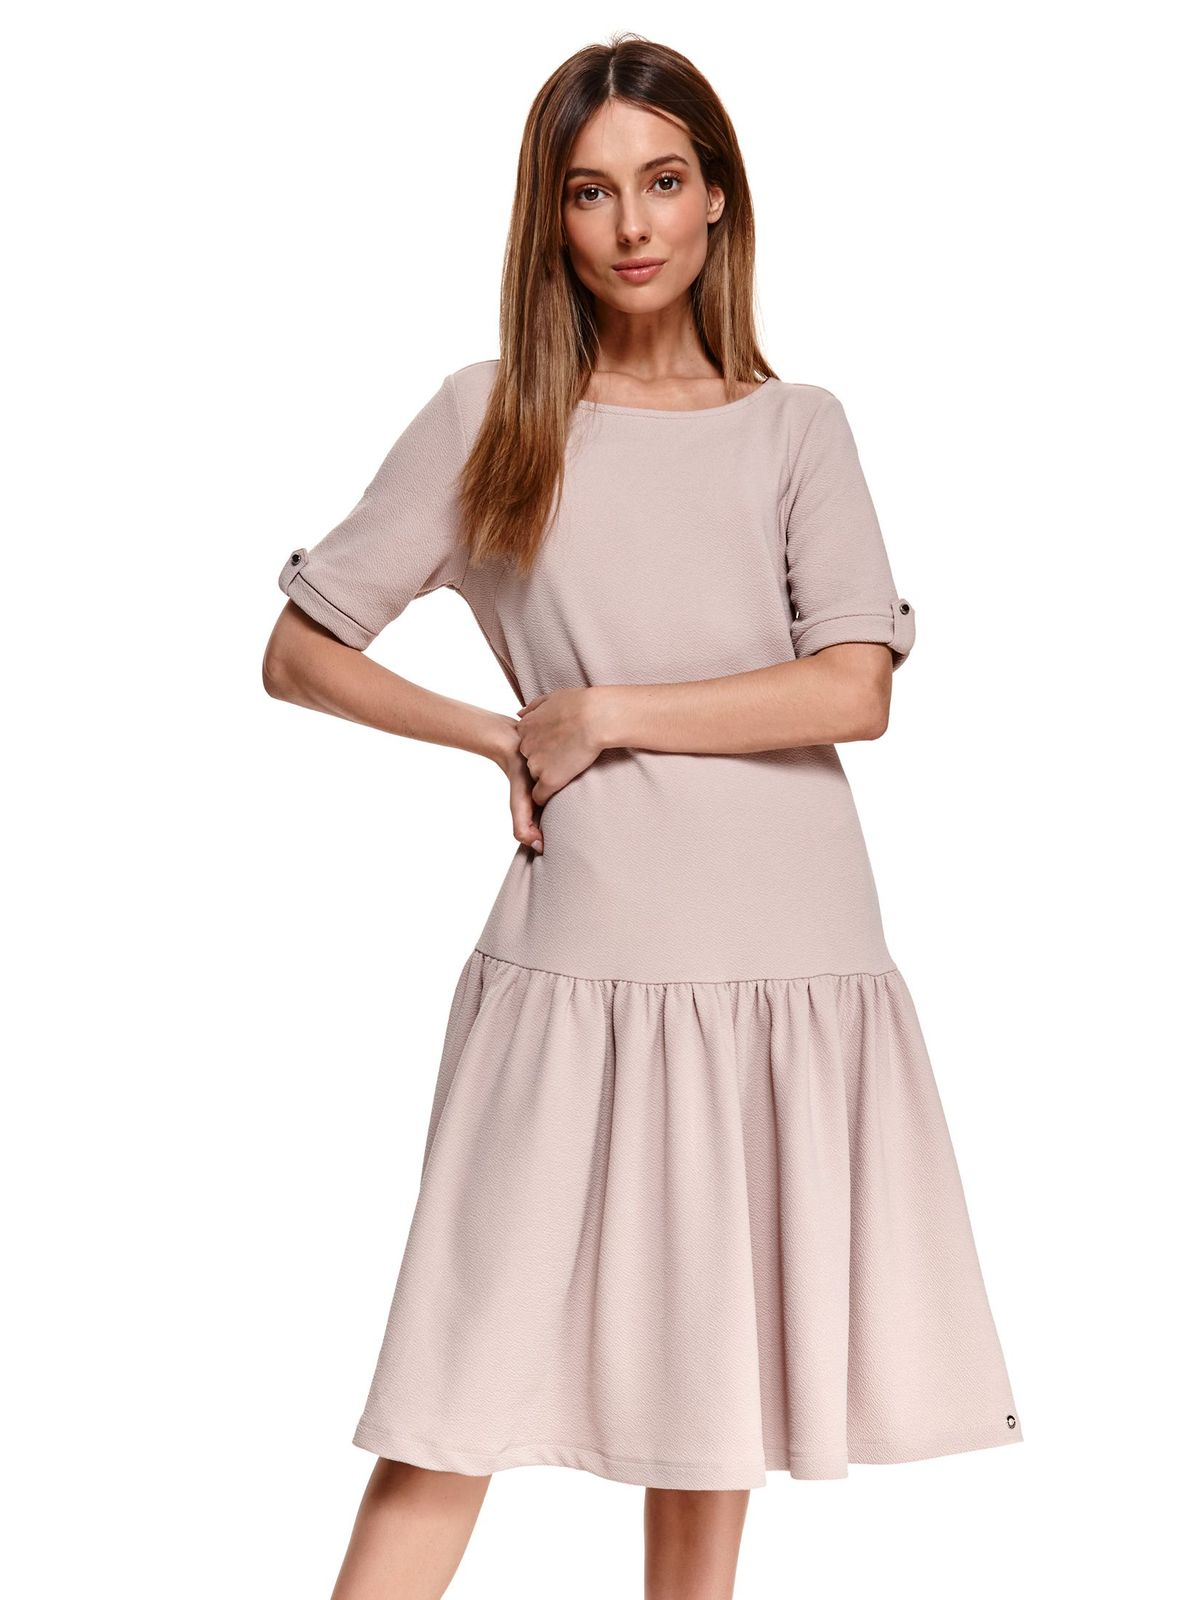 From elastic fabric with ruffle details loose fit peach dress